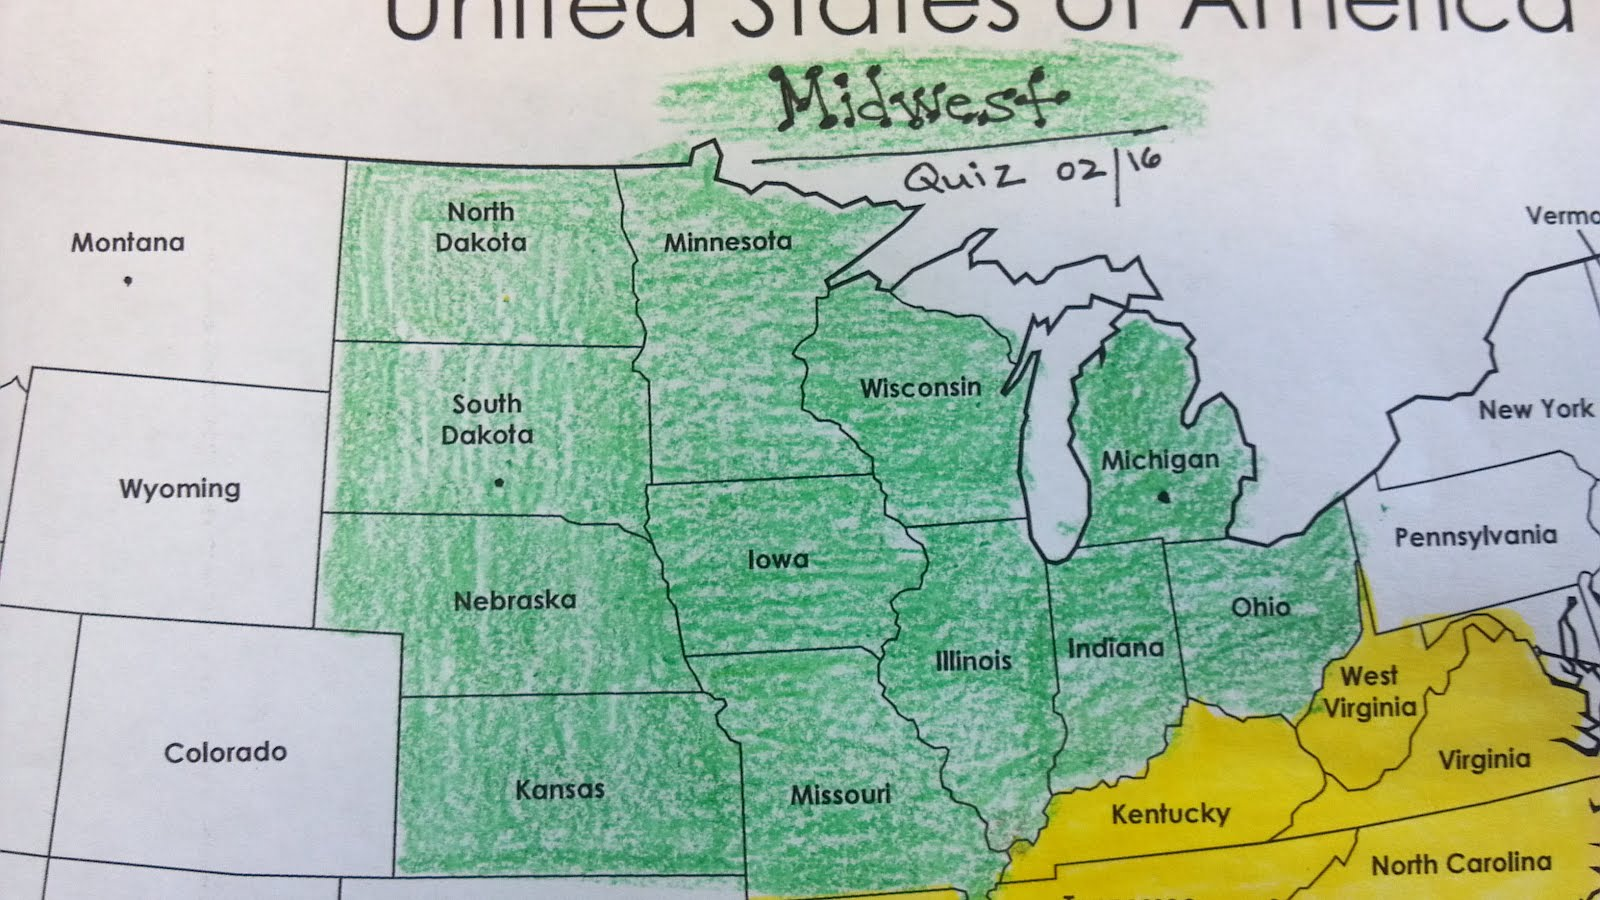 United States Political Map US States Regions Mrs Reeves Th UK - Us map showing regions